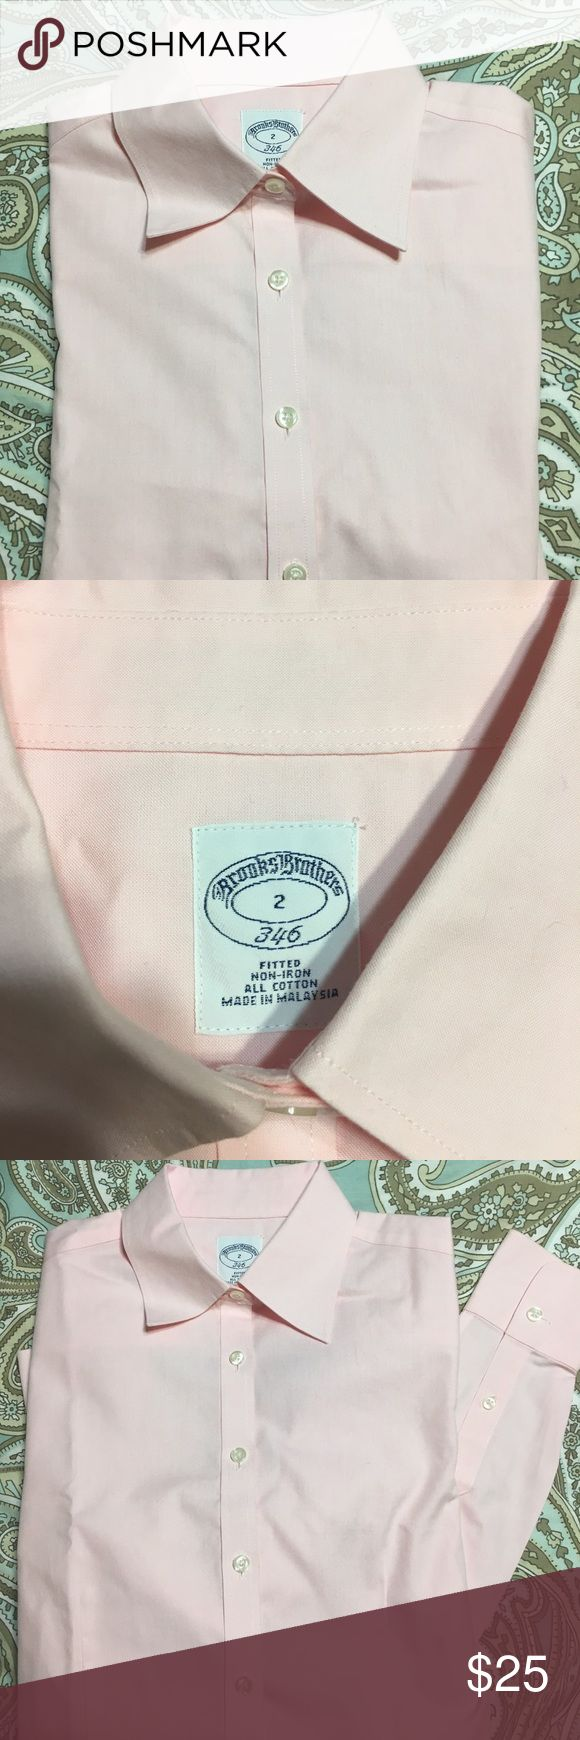 Brooks Brothers dress shirt size 2 Light pink brooks brothers non iron dress shirt size 2. In great condition. Skirt in picture not for sale. Just used for styling. Brooks Brothers Tops Button Down Shirts